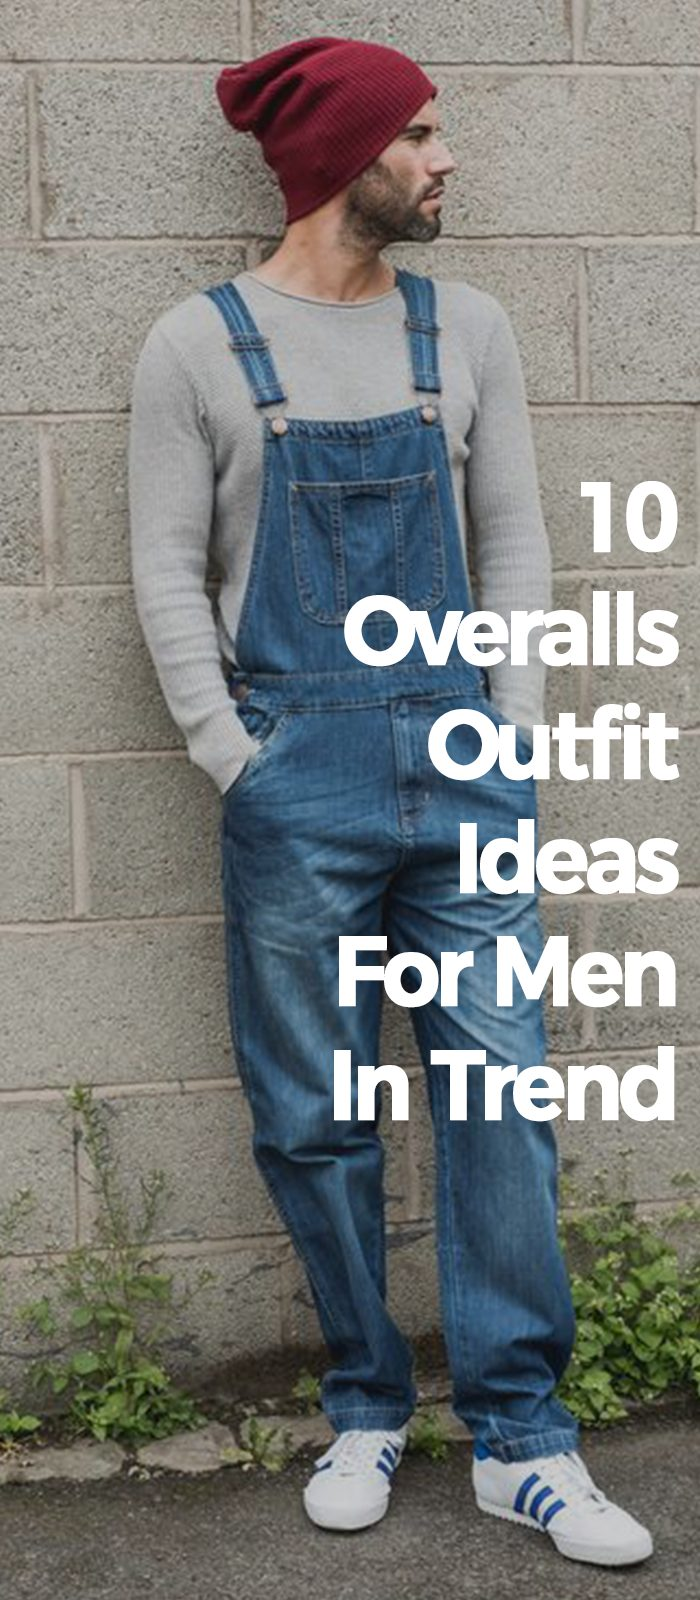 10 Overalls Outfit Ideas For Men In Trend!